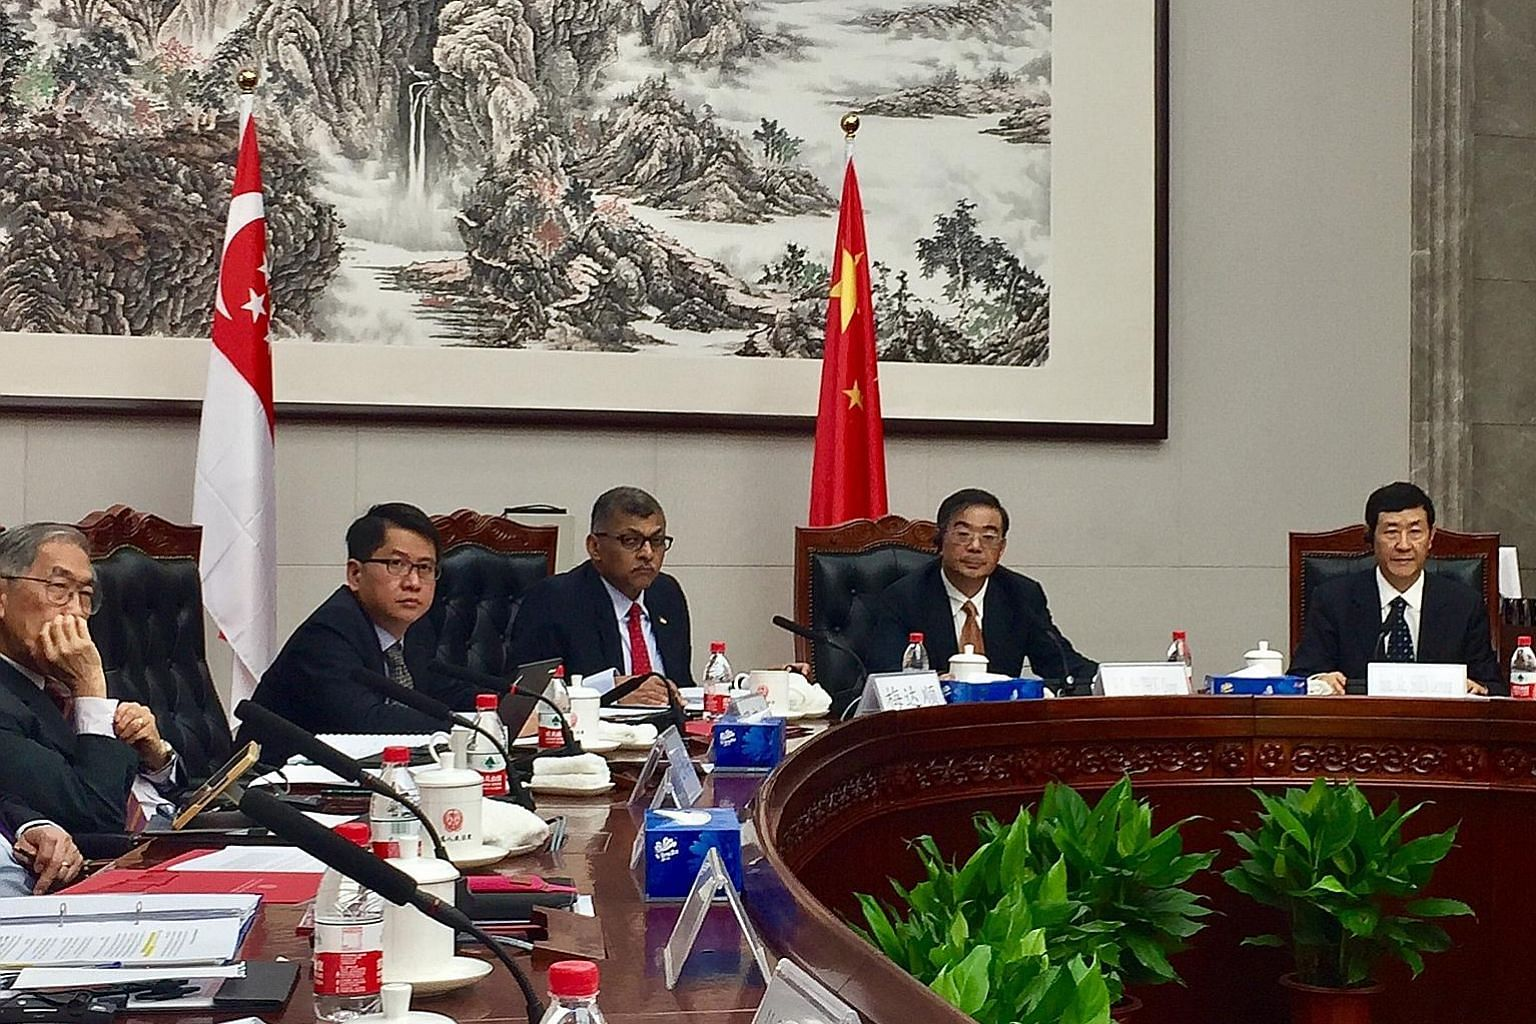 Singapore Chief Justice Sundaresh Menon (third from left) and Chinese Supreme People's Court president Zhou Qiang (fourth from left) at the round-table talk yesterday. With them are (from left) Singapore's Judge of Appeal Chao Hick Tin and Ambassador